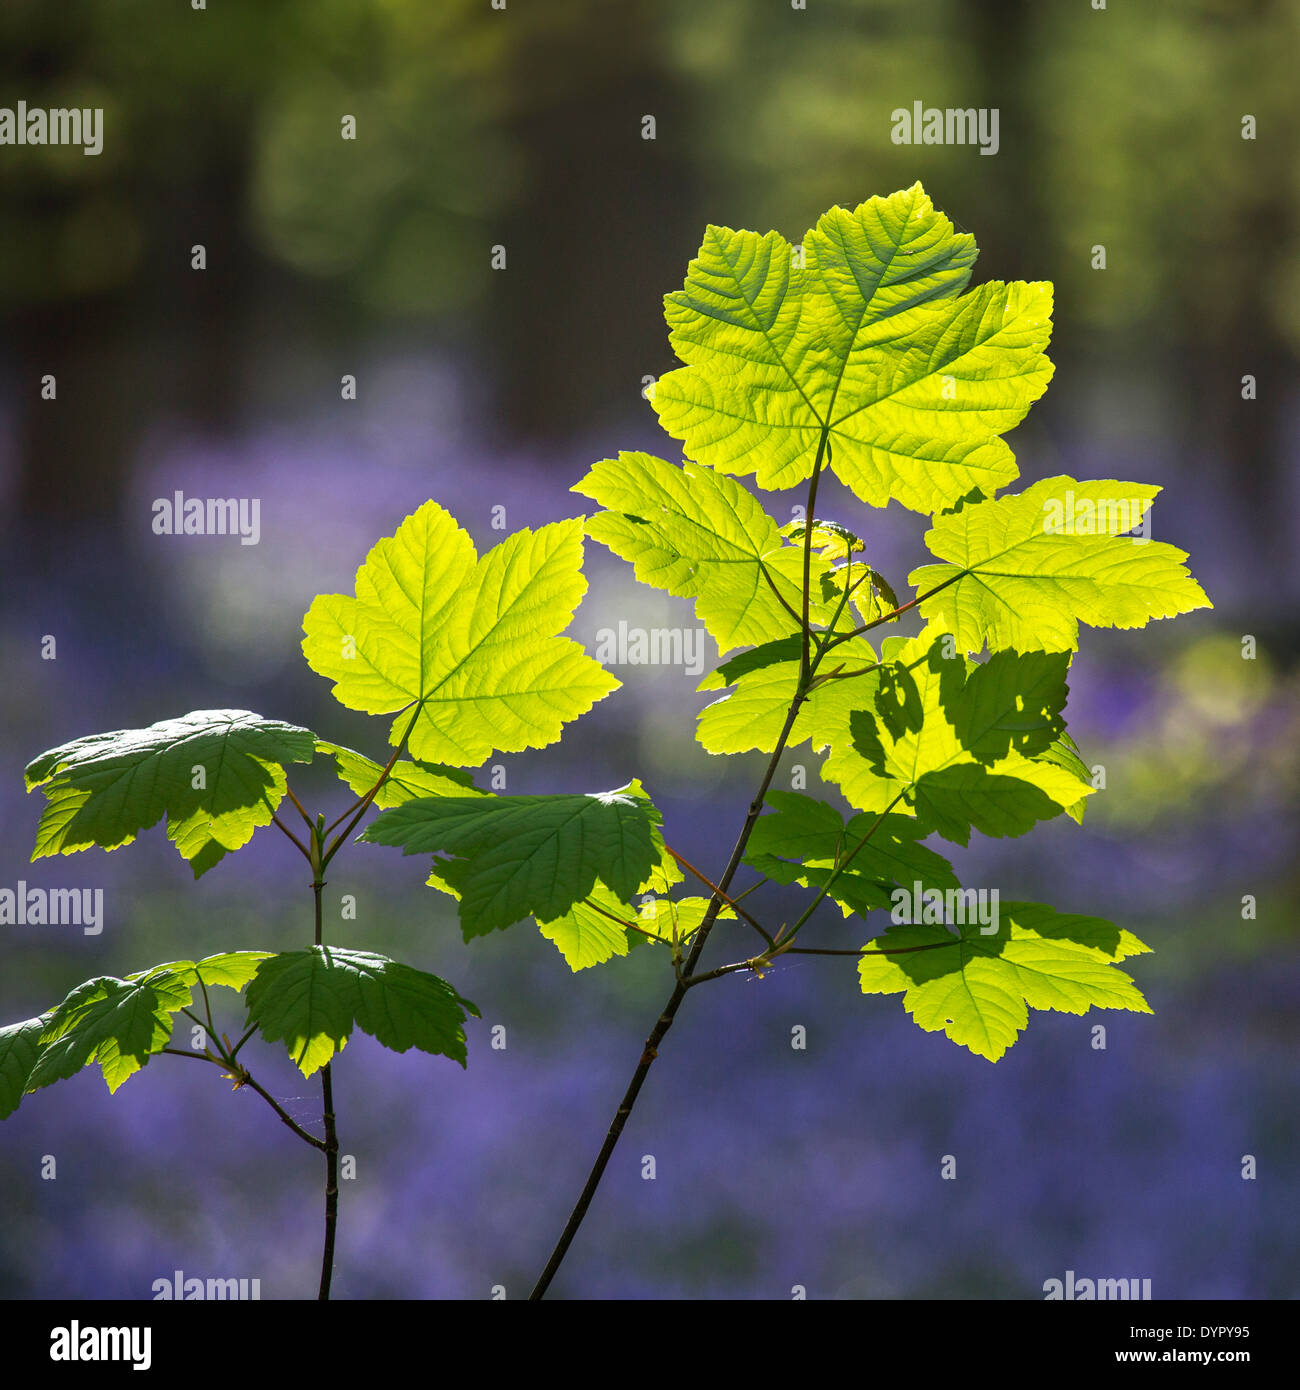 Sycamore maple tree (Acer pseudoplatanus) leaves in forest in spring Stock Photo